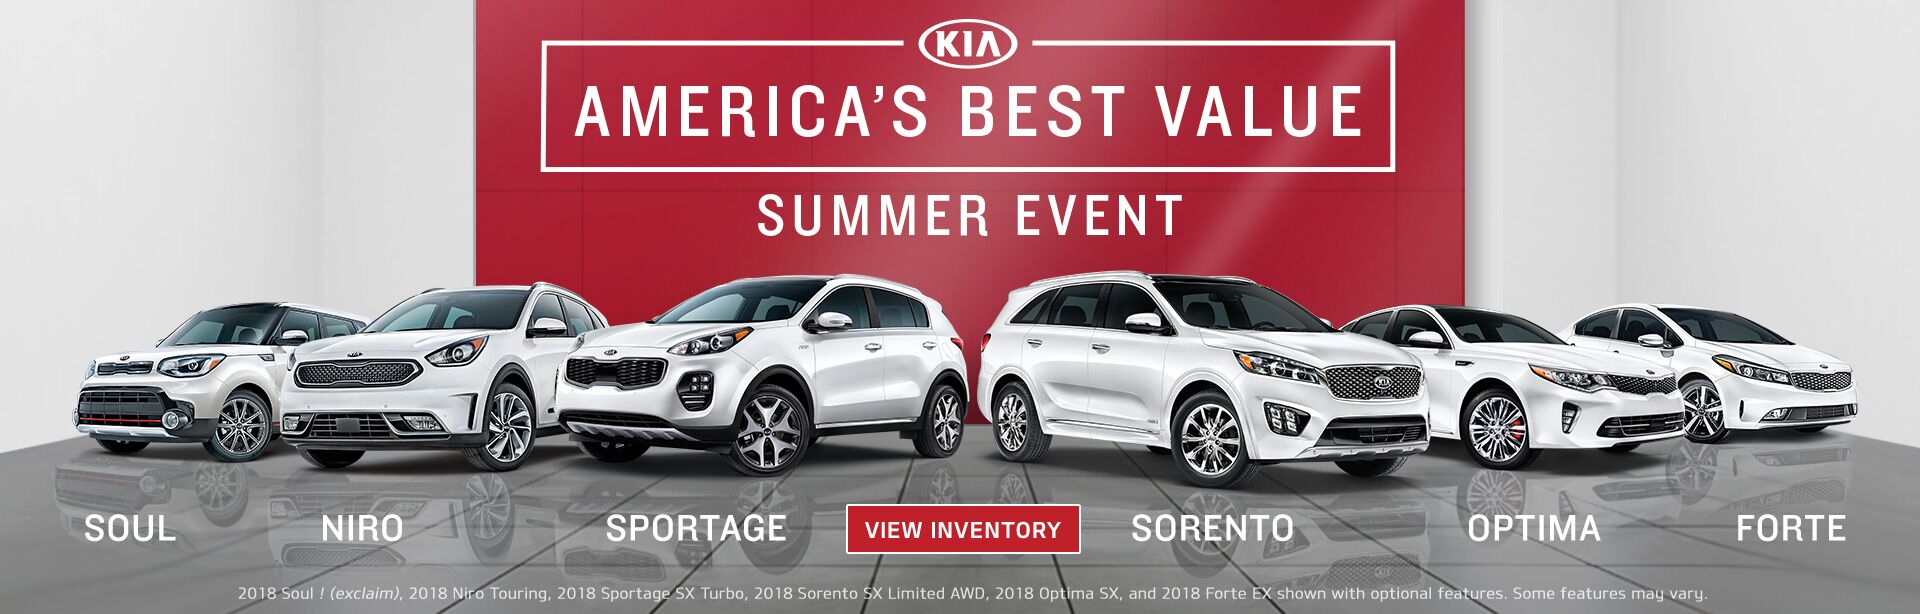 America's Best Value Summer Event